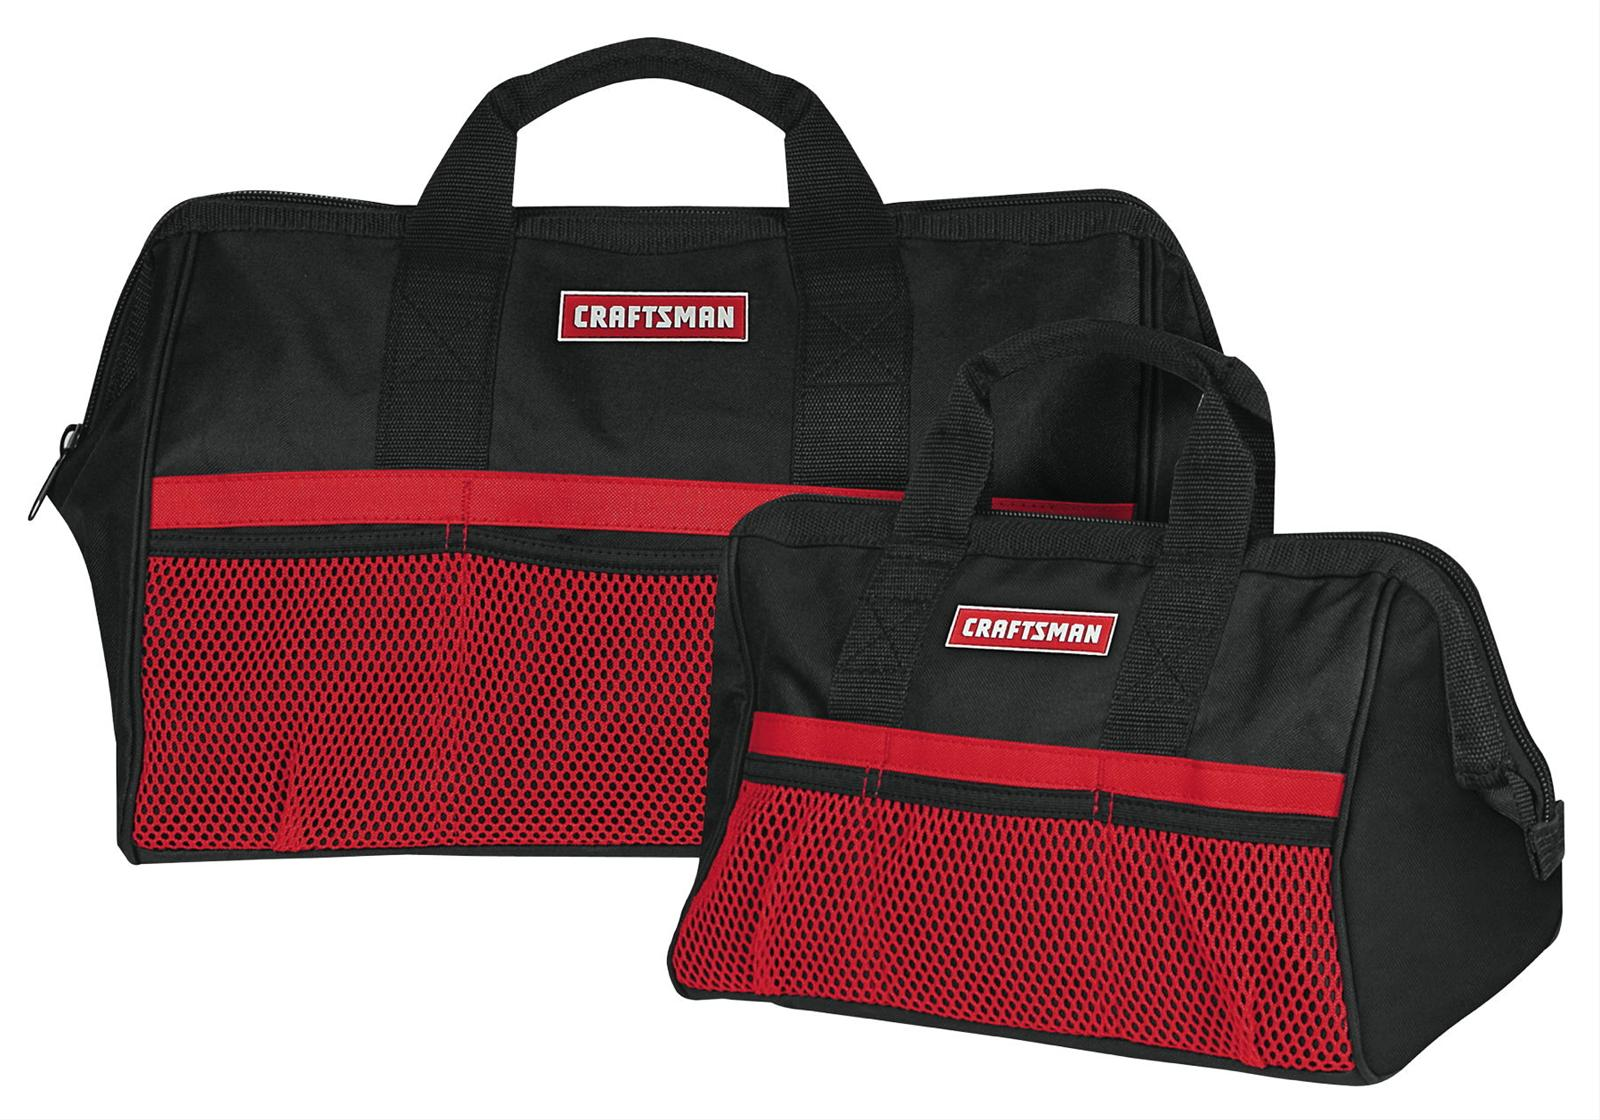 Craftsman Tool Bags 009 37537 Free Shipping On Orders Over 99 At Summit Racing